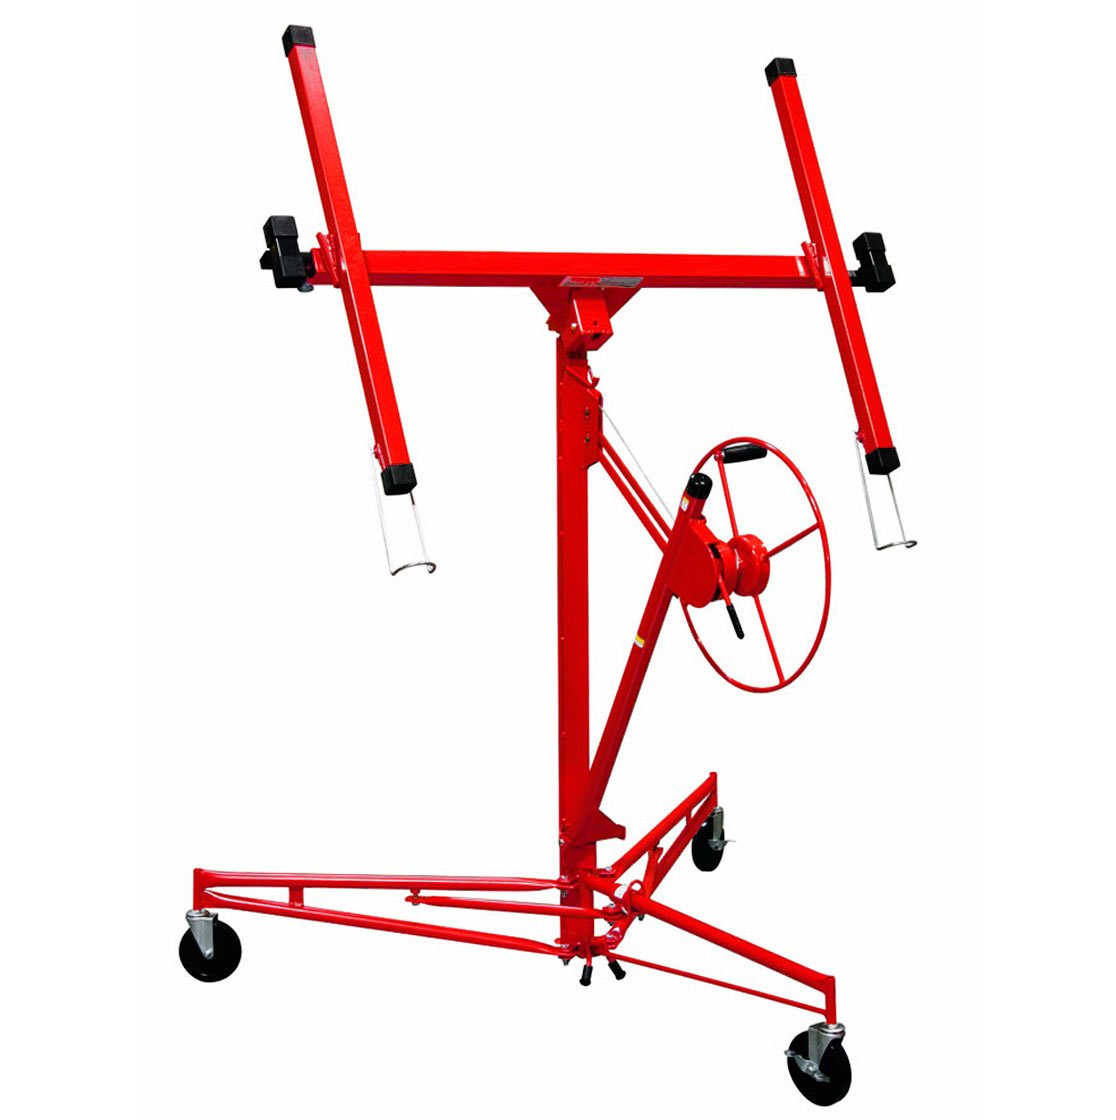 Troy DPH11 Professional Series 11 Foot Drywall & Panel Lift Hoist by Troy (Image #1)